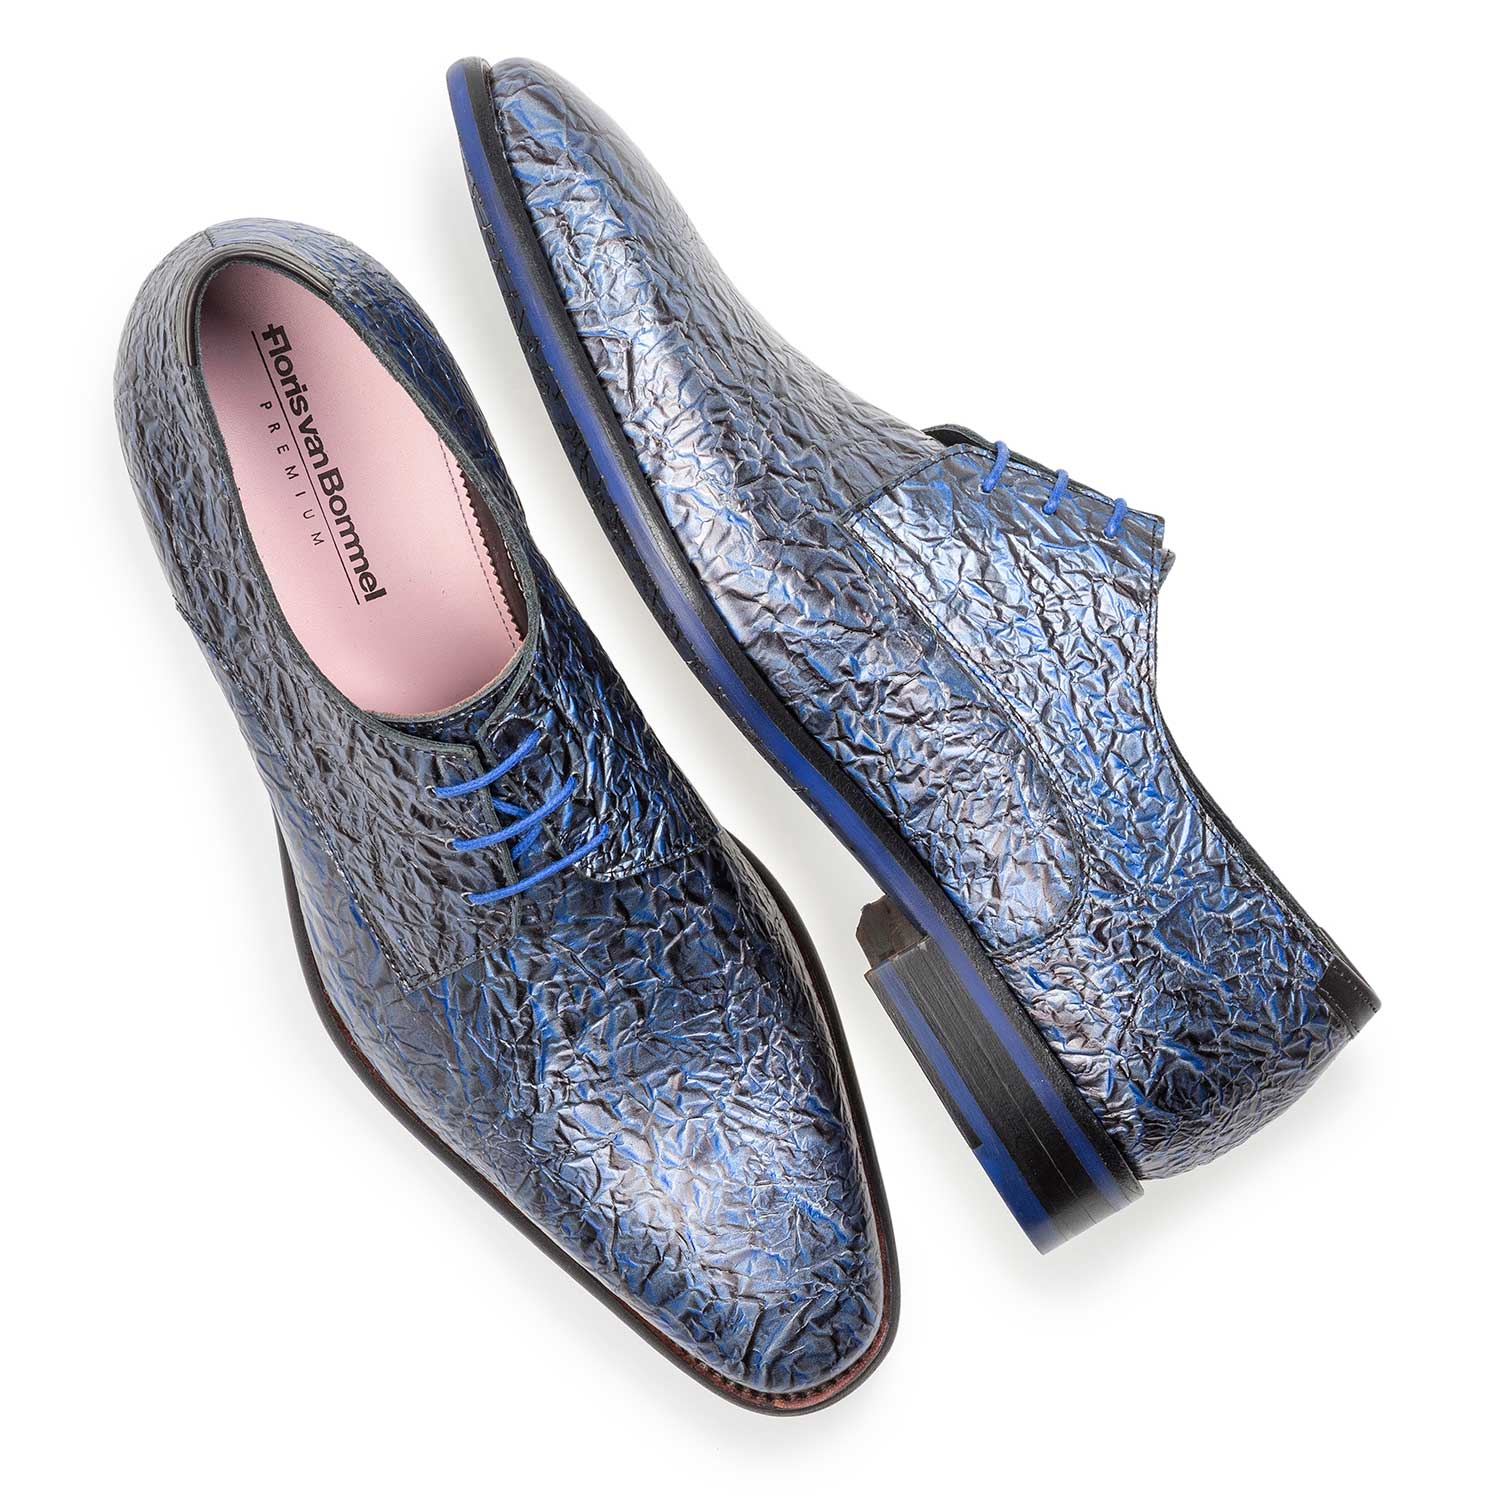 18097/05 - Premium dark blue printed patent leather lace shoe